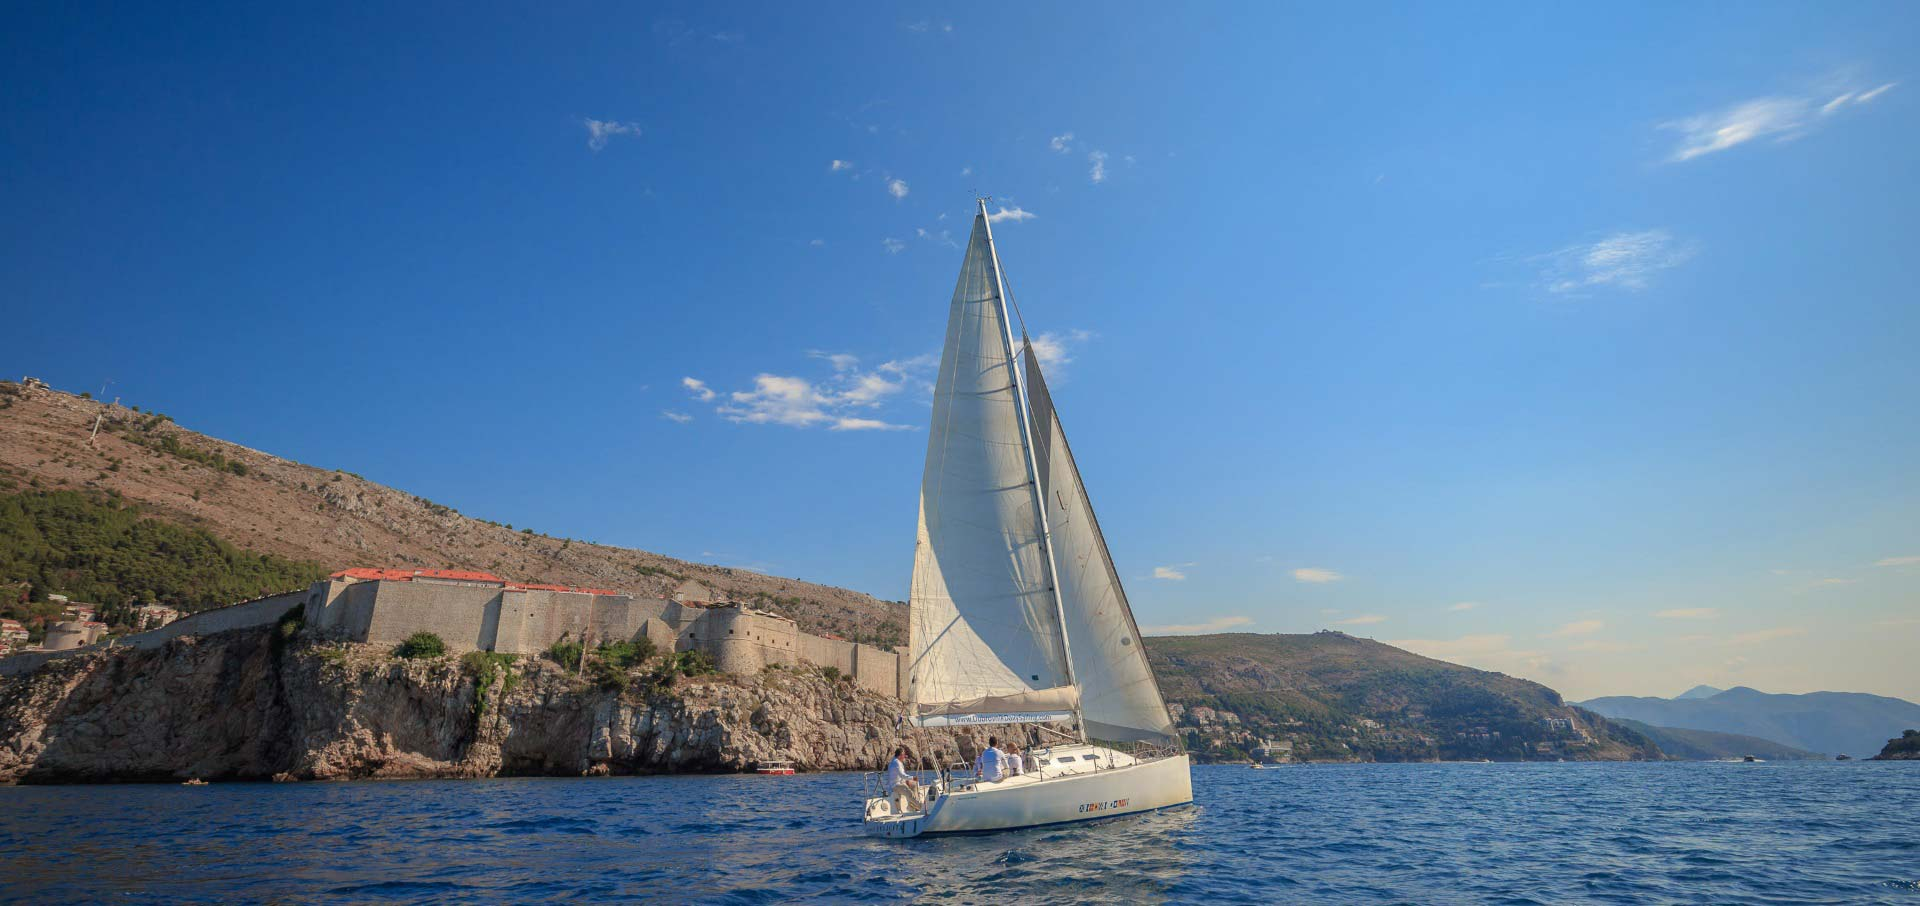 Sightseeing Dubrovnik on sailboat Dubrovnik Daily Sailing